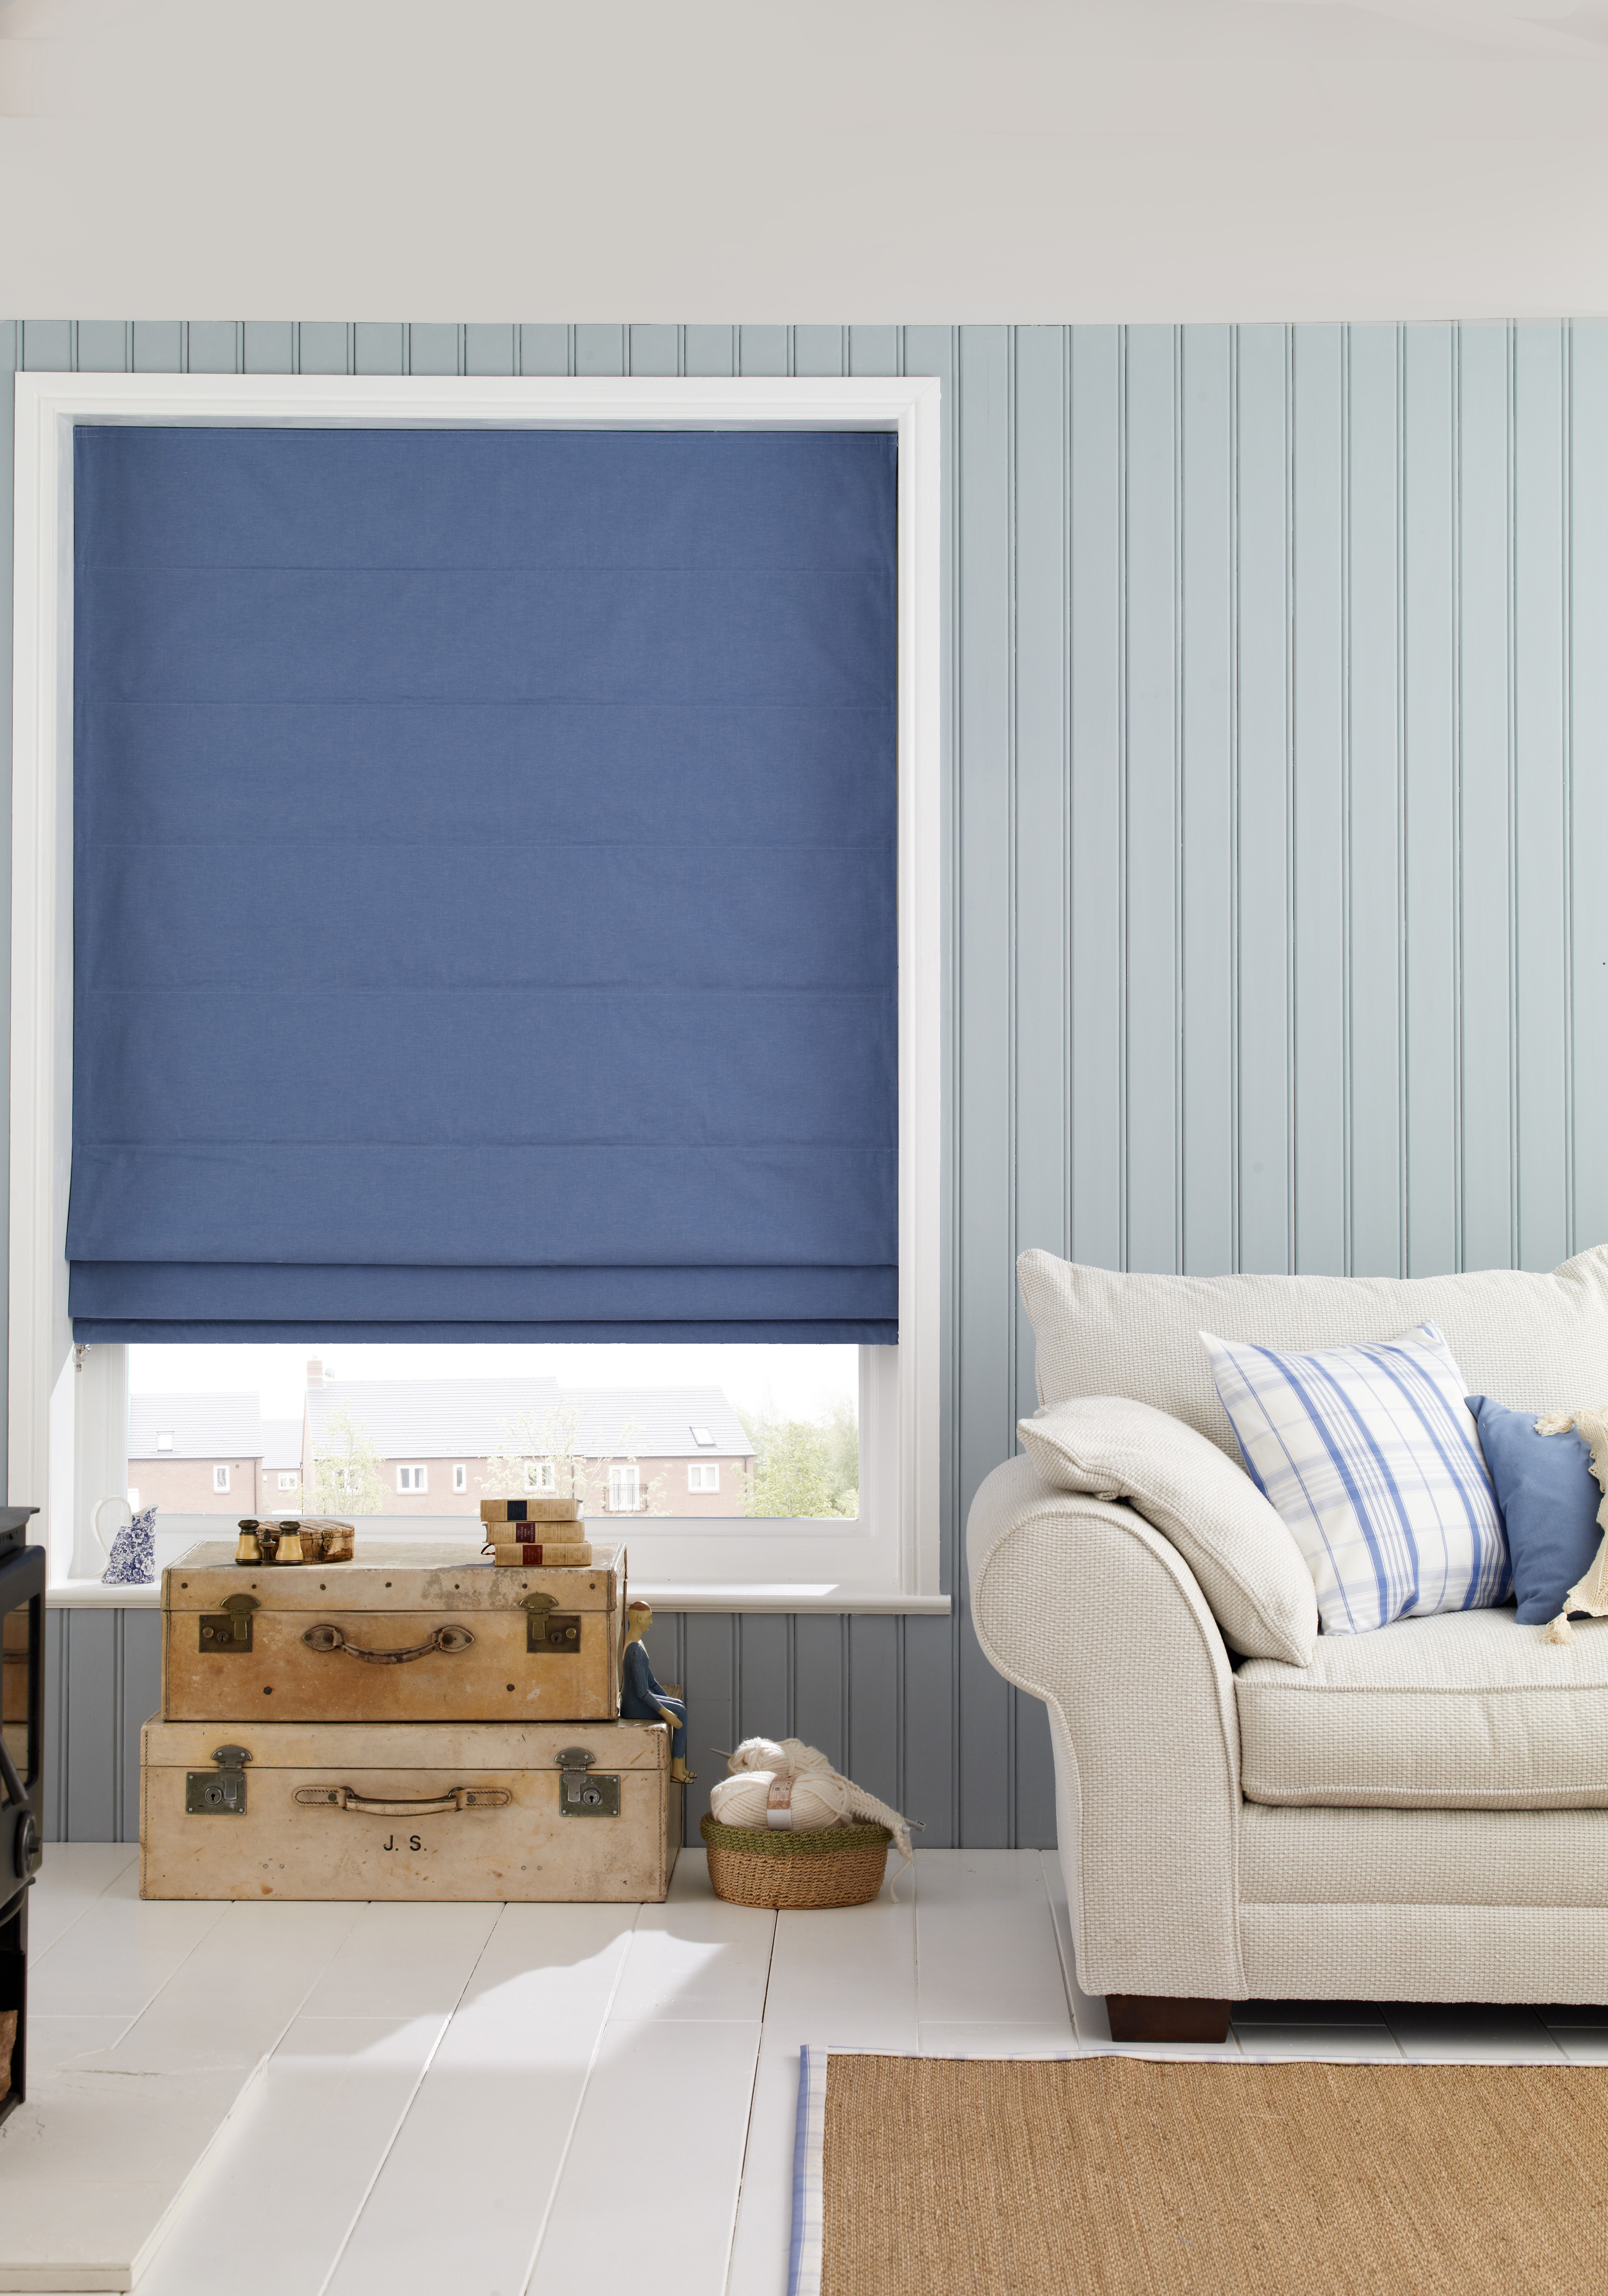 your cleaners in blind hardest what to the blinds things clean one house of vertical cleaner diy s pin chew